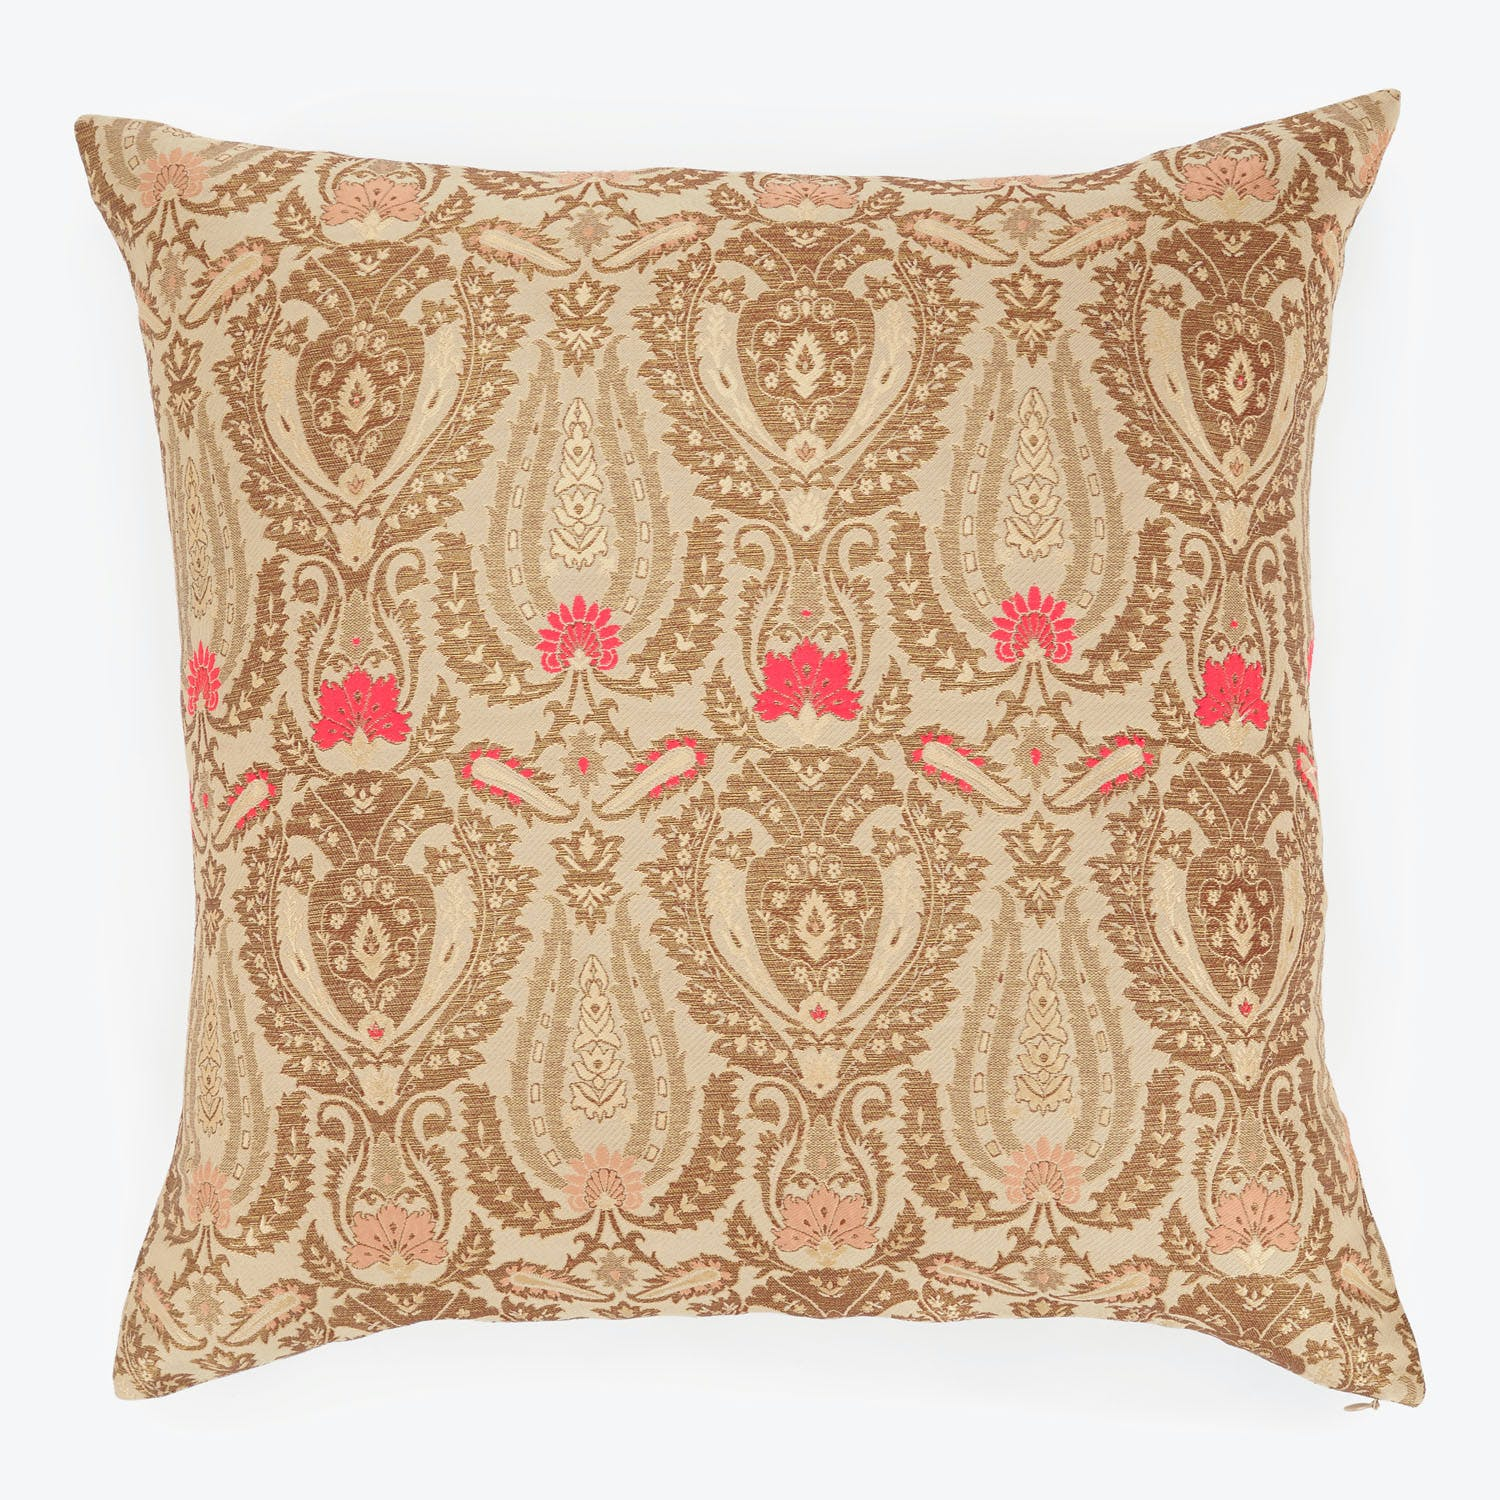 Brocade Pillow